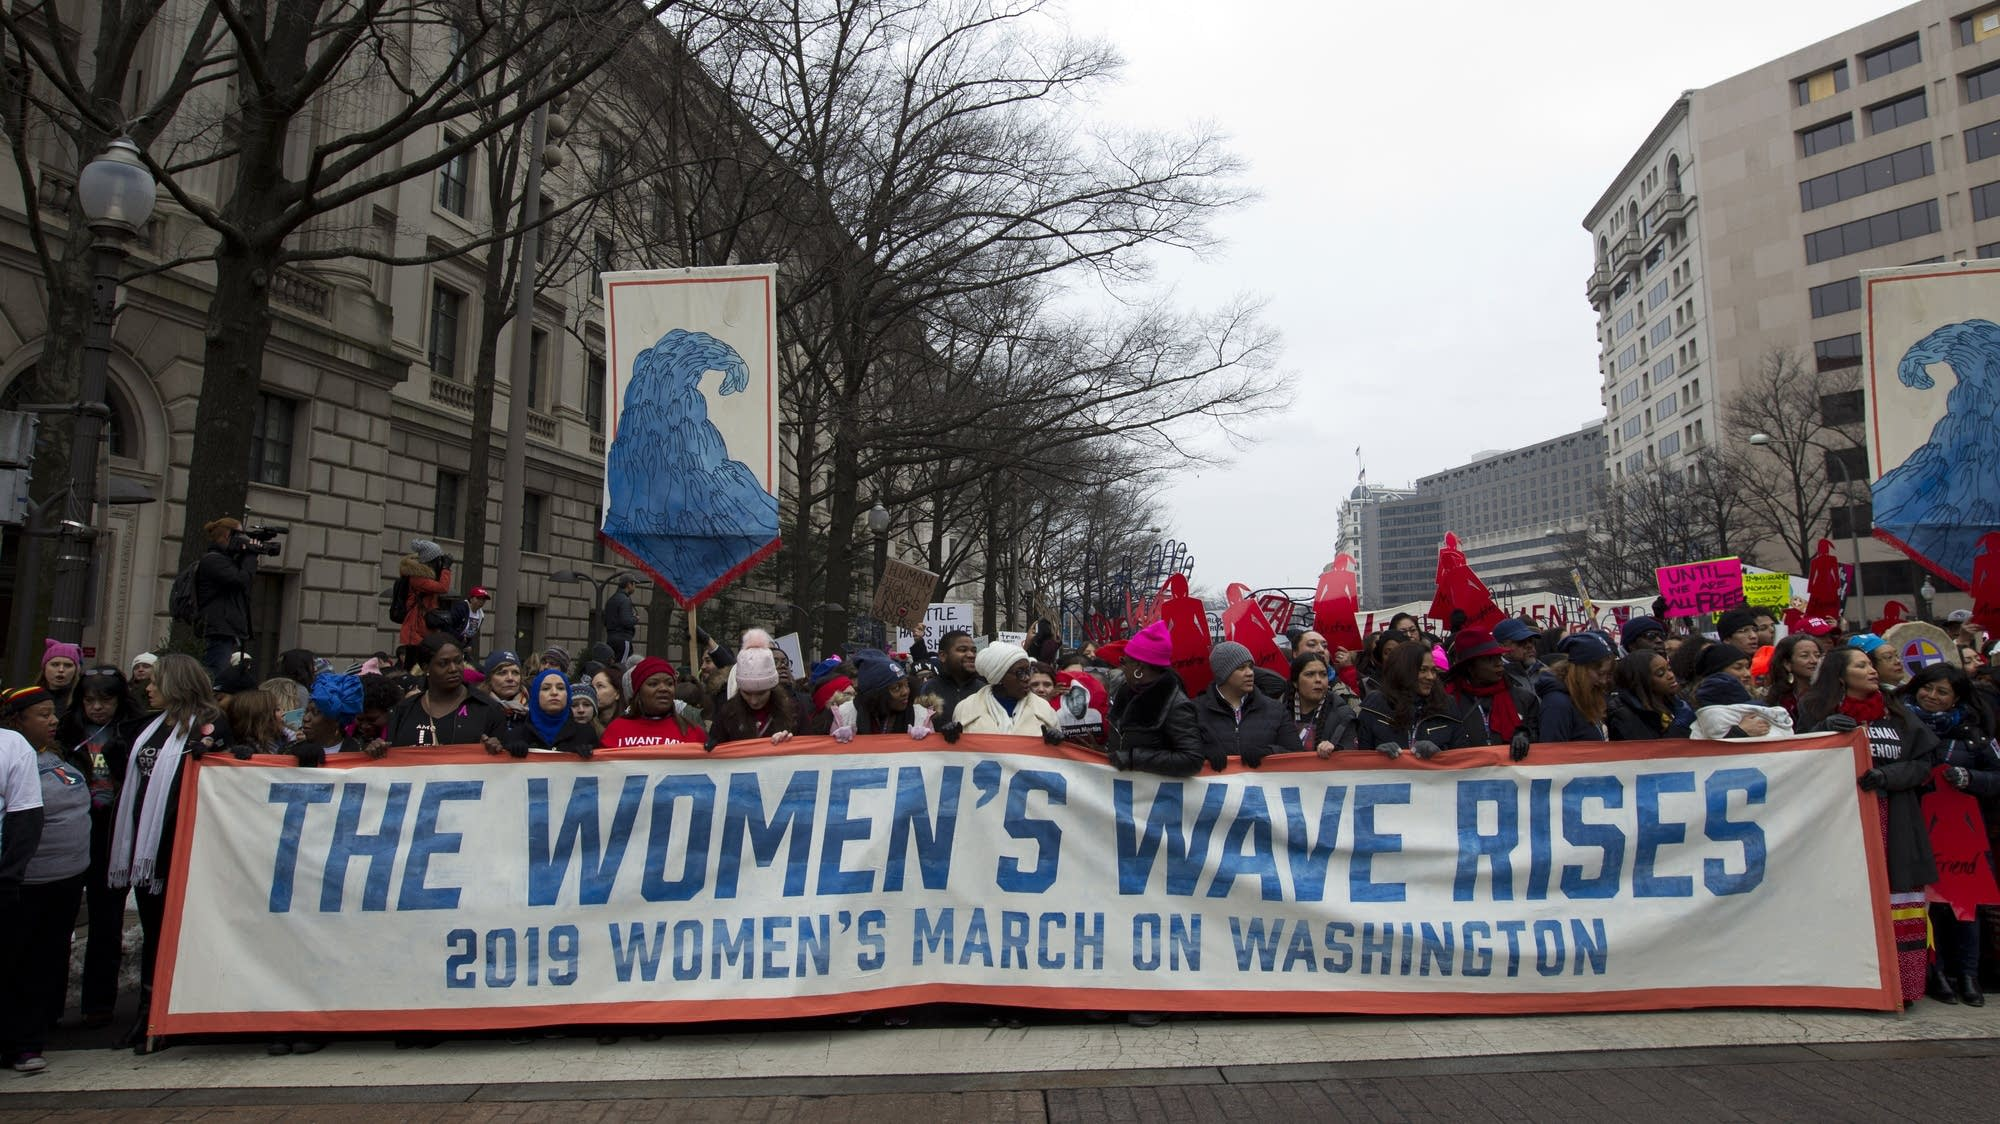 Demonstrators march during the Women's March in Washington.